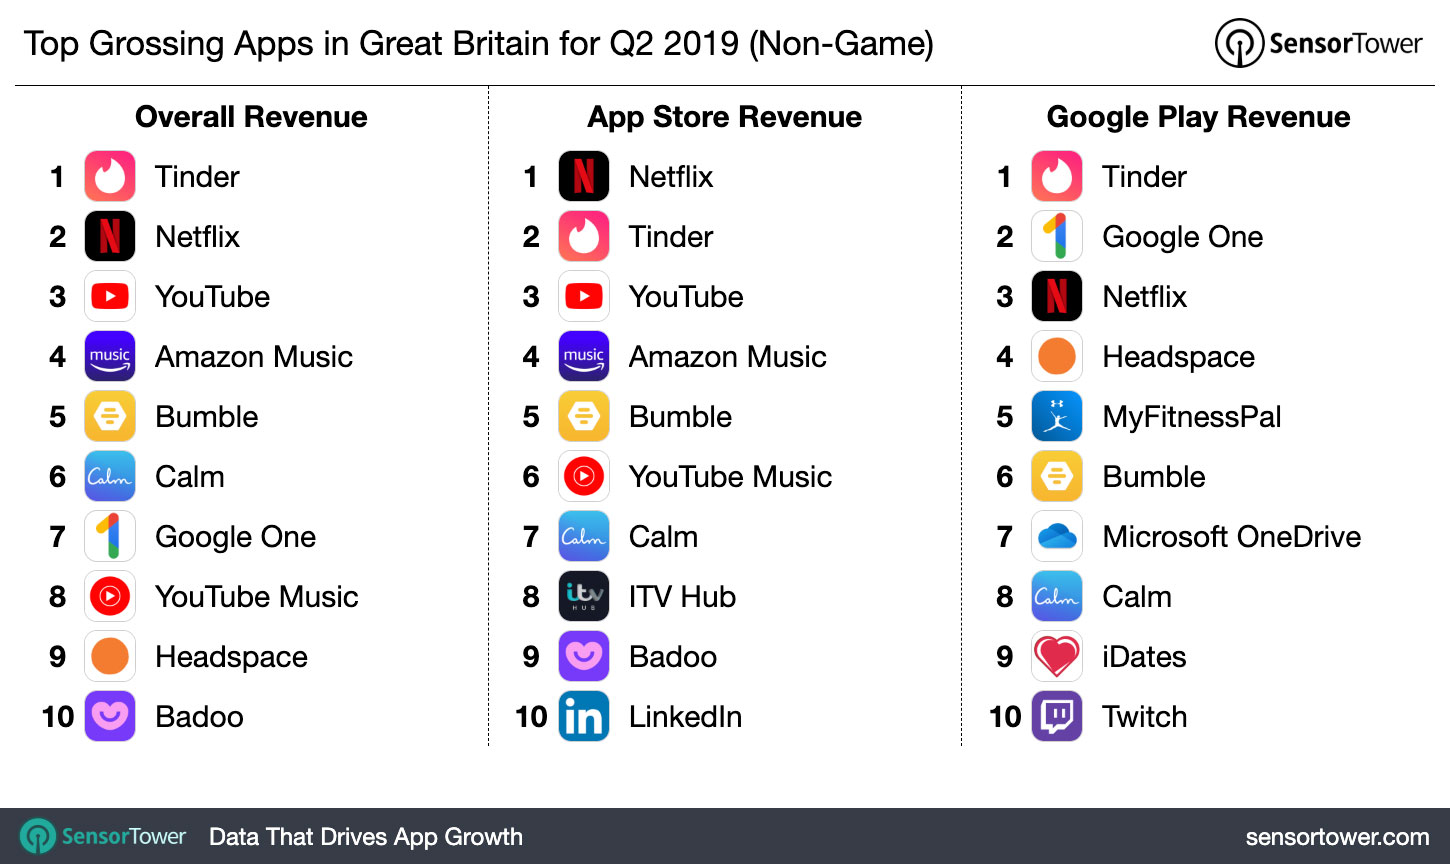 Top Grossing Apps in Great Britain for Q2 2019